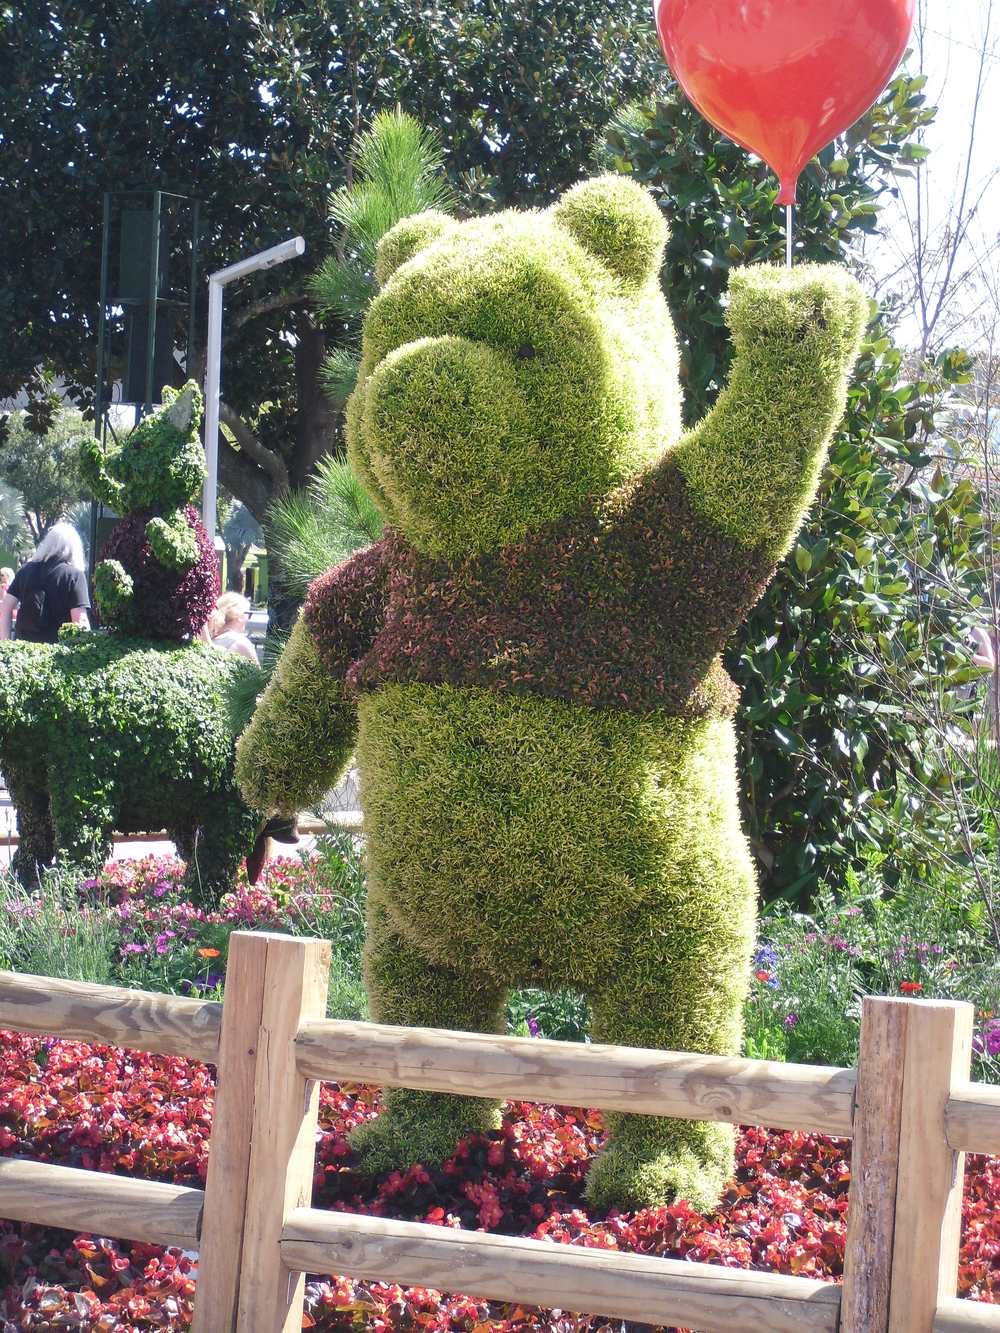 Winnie The Pooh topiary at Epcot's Food and Wine Festival, Epcot, WDW, Florida -from author's collection